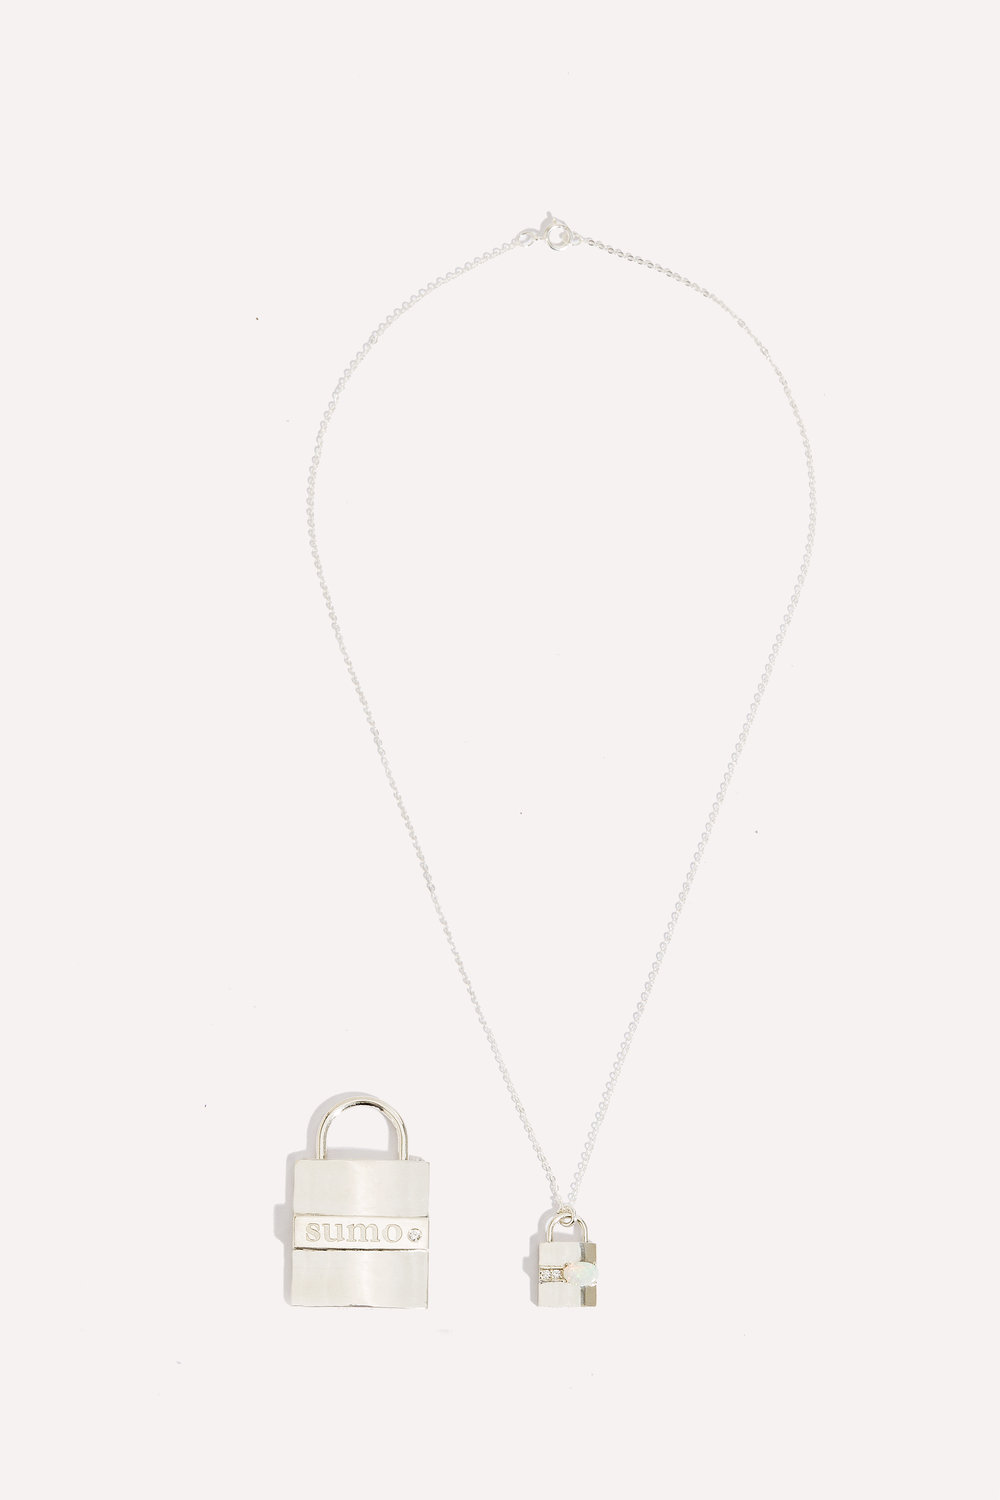 The Pet Tag comes in a variety of metals from brass to solid gold, with the option to add his or hers birthstone to it. The matching necklace comes in sterling silver or gold with pave diamonds and option to adjust your birthstone as well.